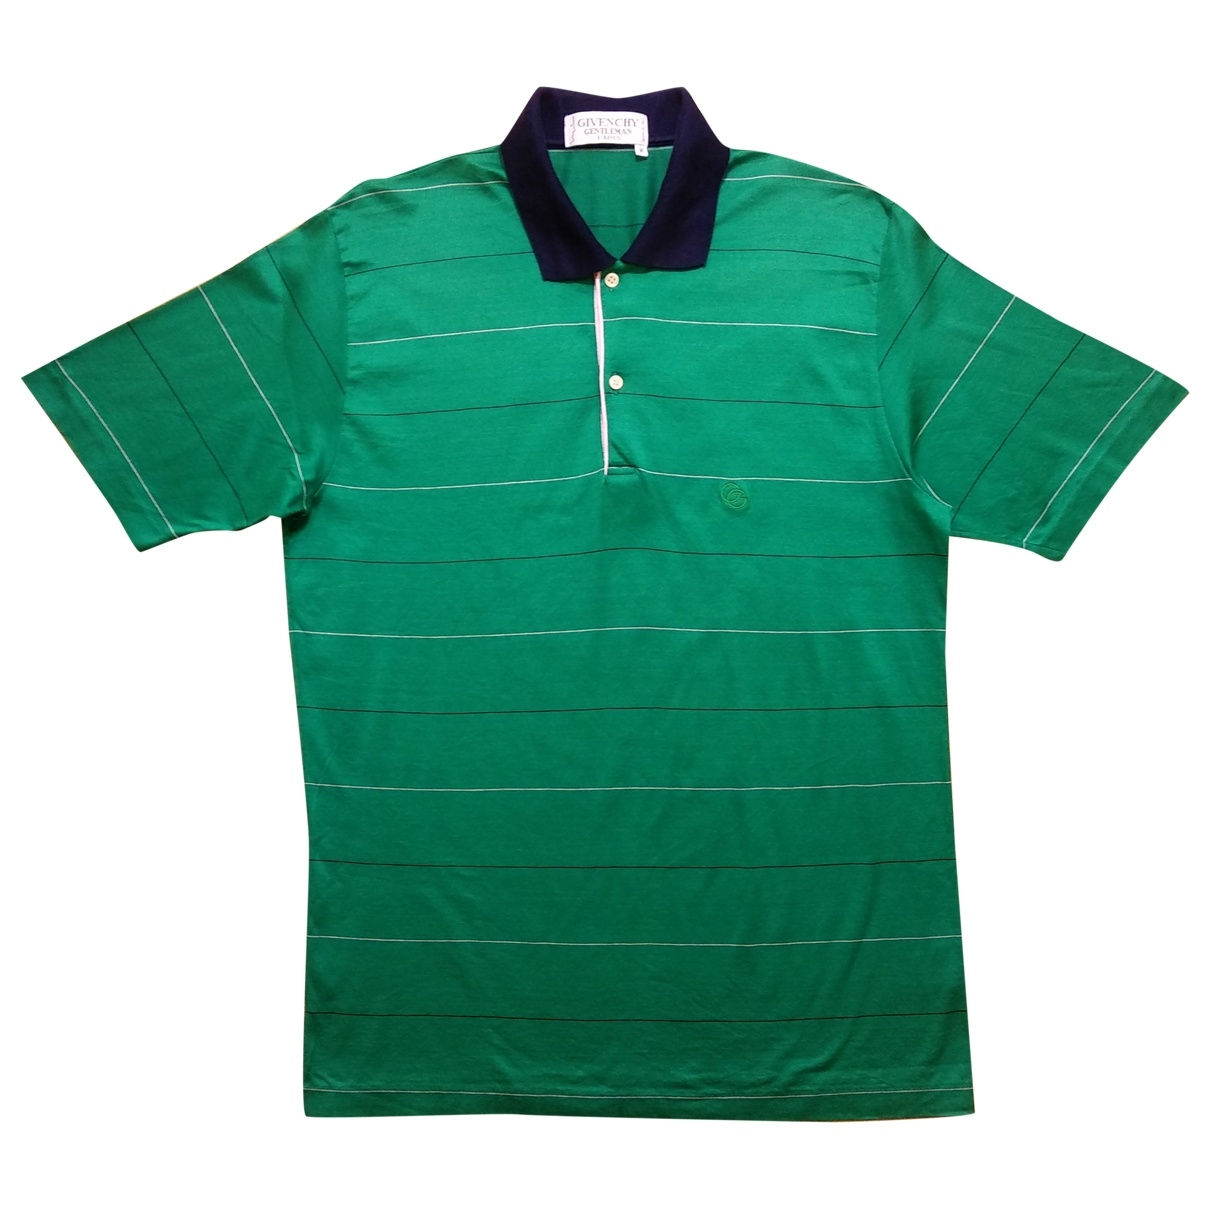 Givenchy \N Green Cotton Polo shirts for Men M International